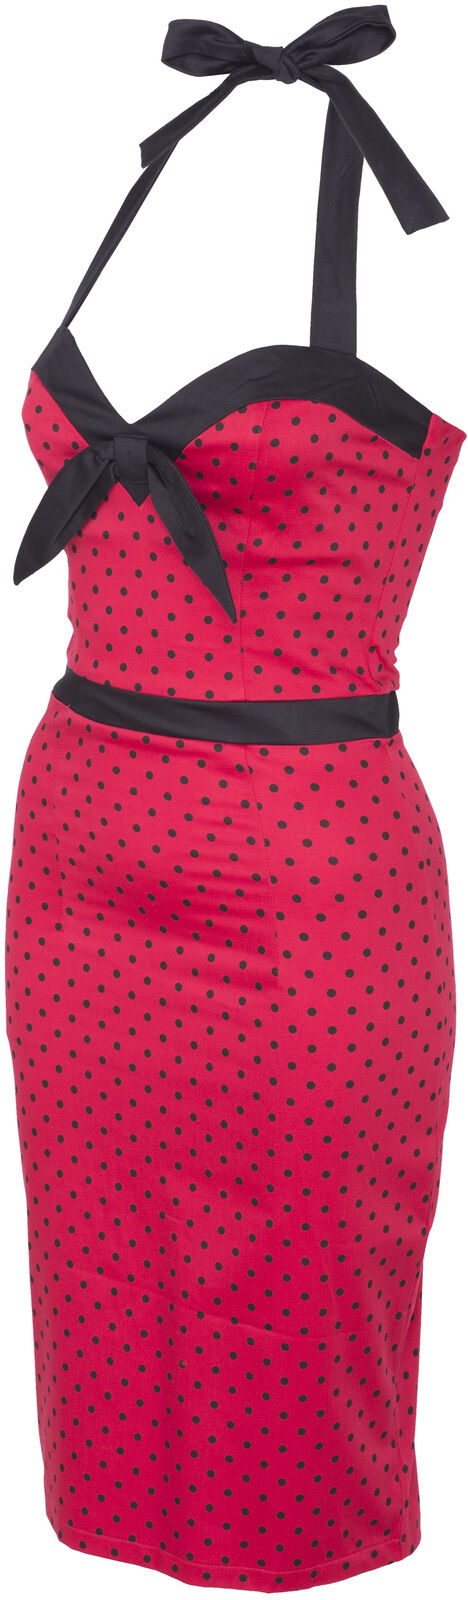 Coste Coste Coste carogna Nelly FIFTIES PIN UP Polka Dots punti Pencil Dress Abito Rockabilly 56339c